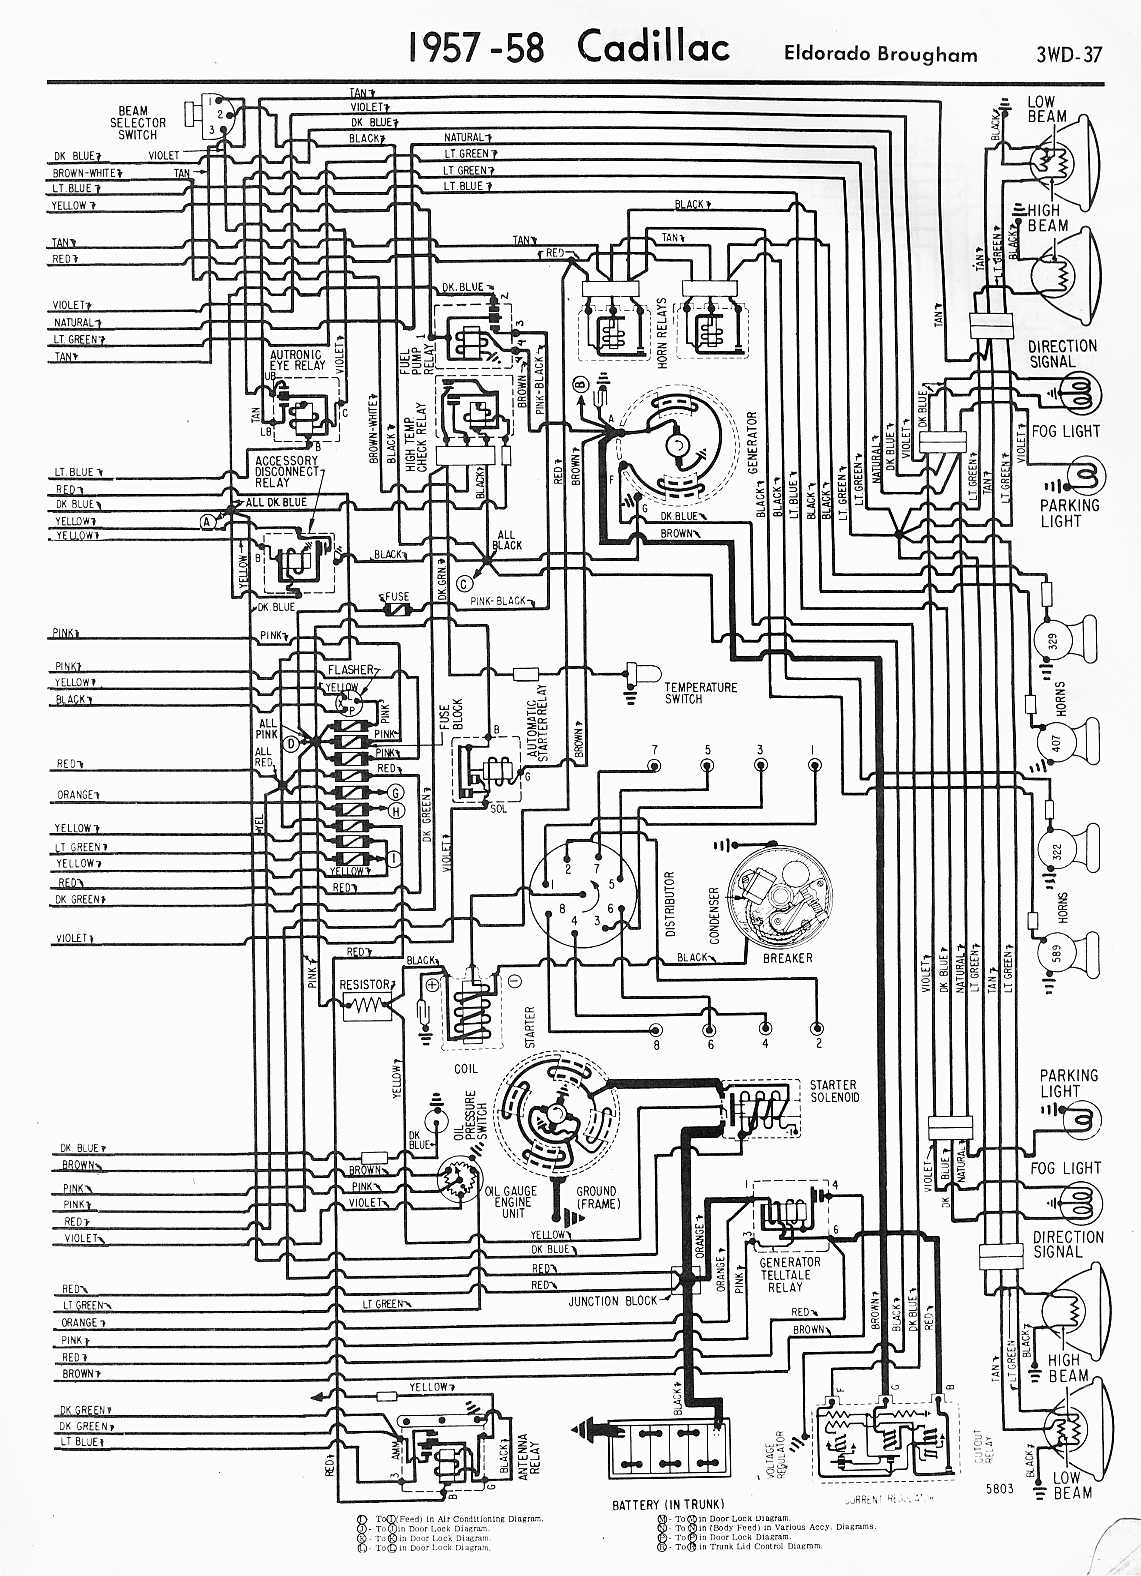 Marvelous Wiring Diagram For 1992 Cadillac Fleetwood Wiring Diagram Tutorial Wiring Cloud Faunaidewilluminateatxorg